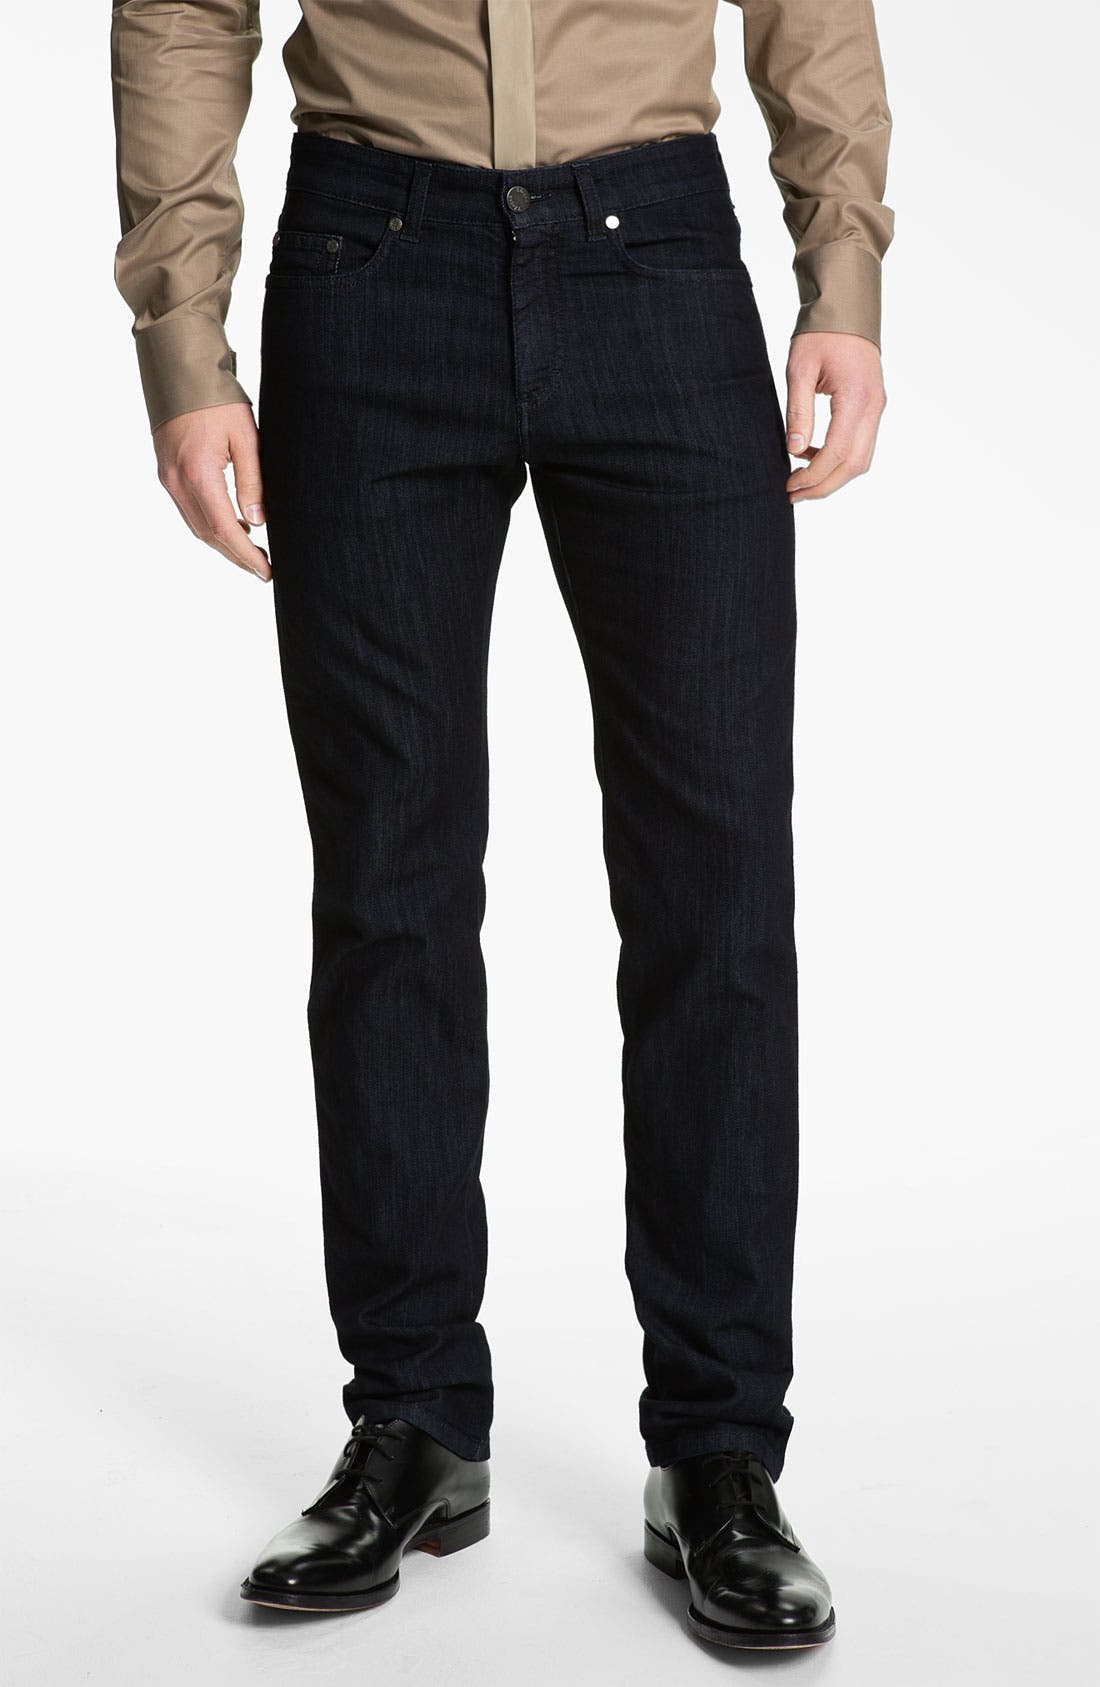 Alternate Image 1 Selected - Z Zegna Straight Leg Jeans (Black)